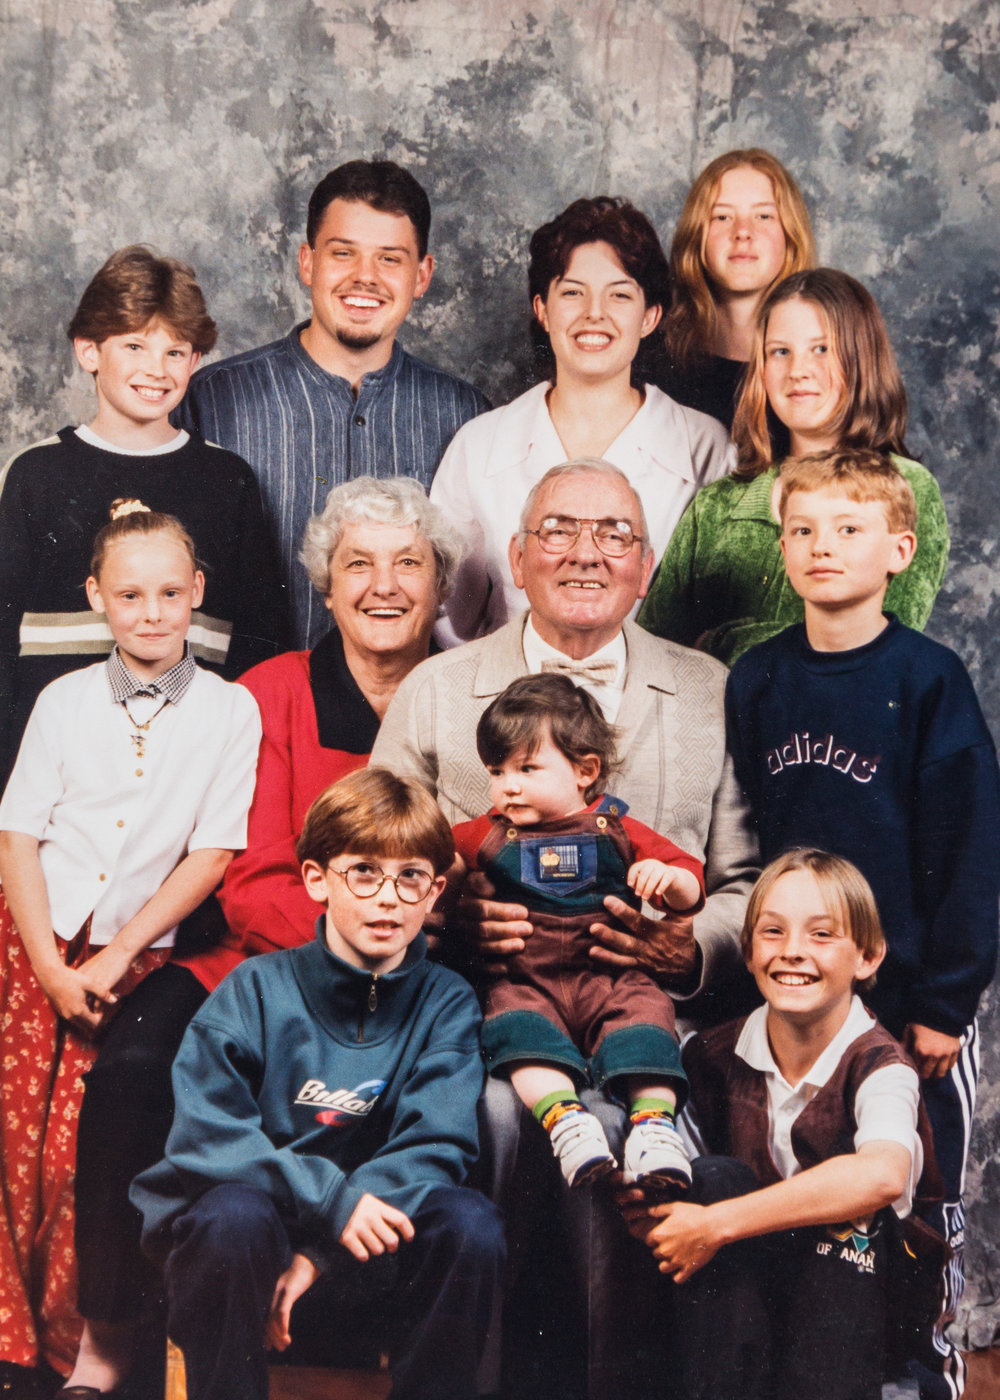 Ted and Tessie with some of their grandchildren in 1995